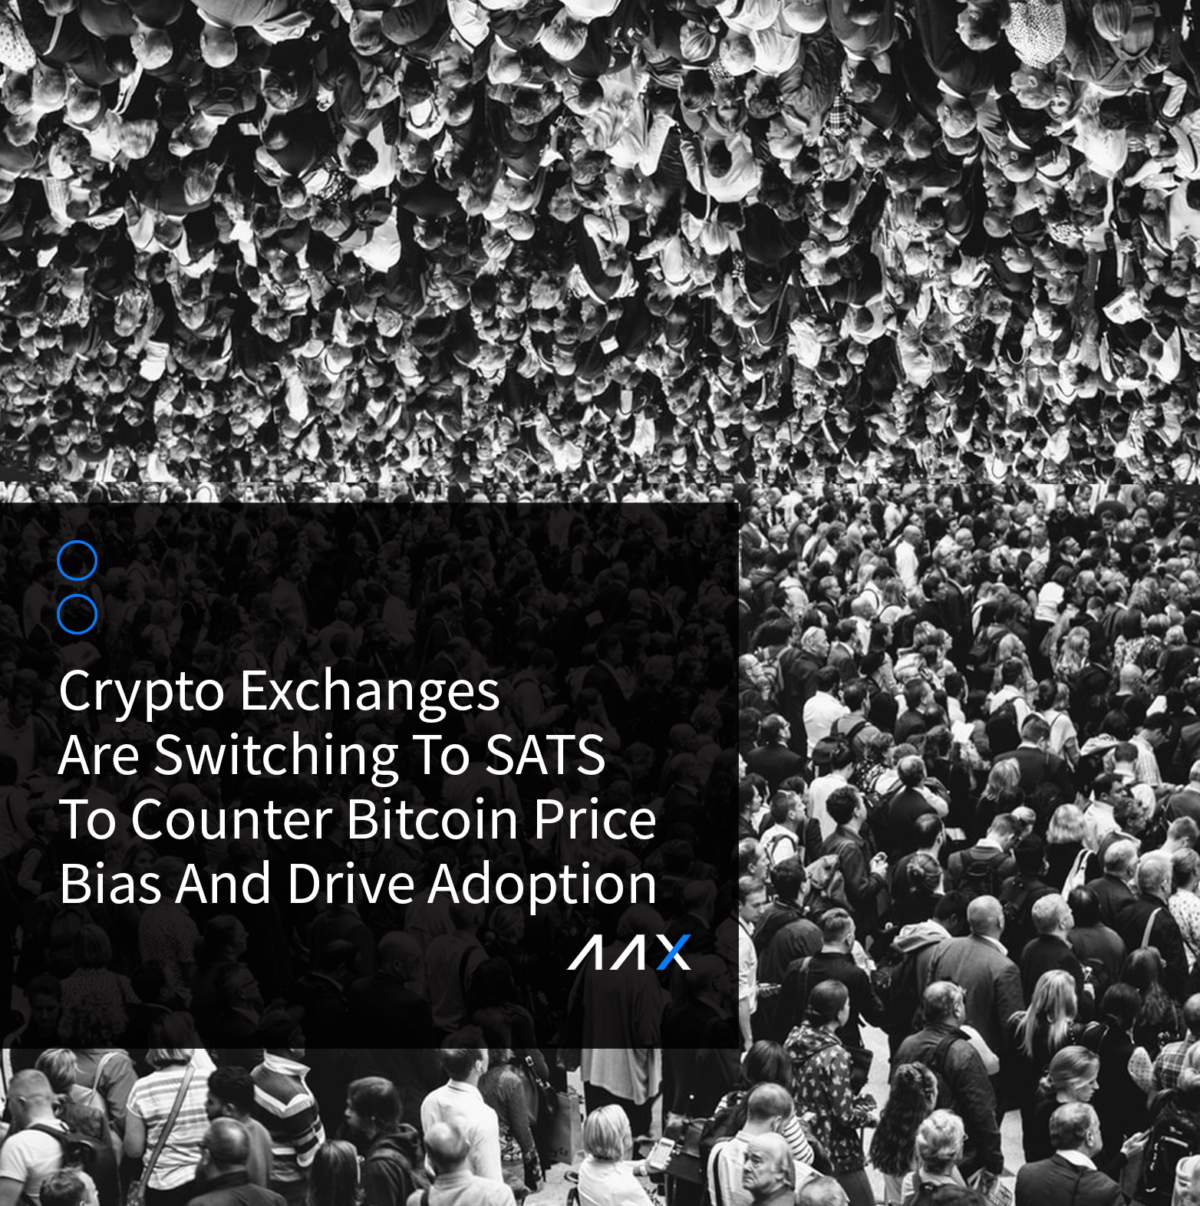 Crypto Exchanges Are Switching To SATS To Counter Bitcoin Price Bias And Drive Adoption